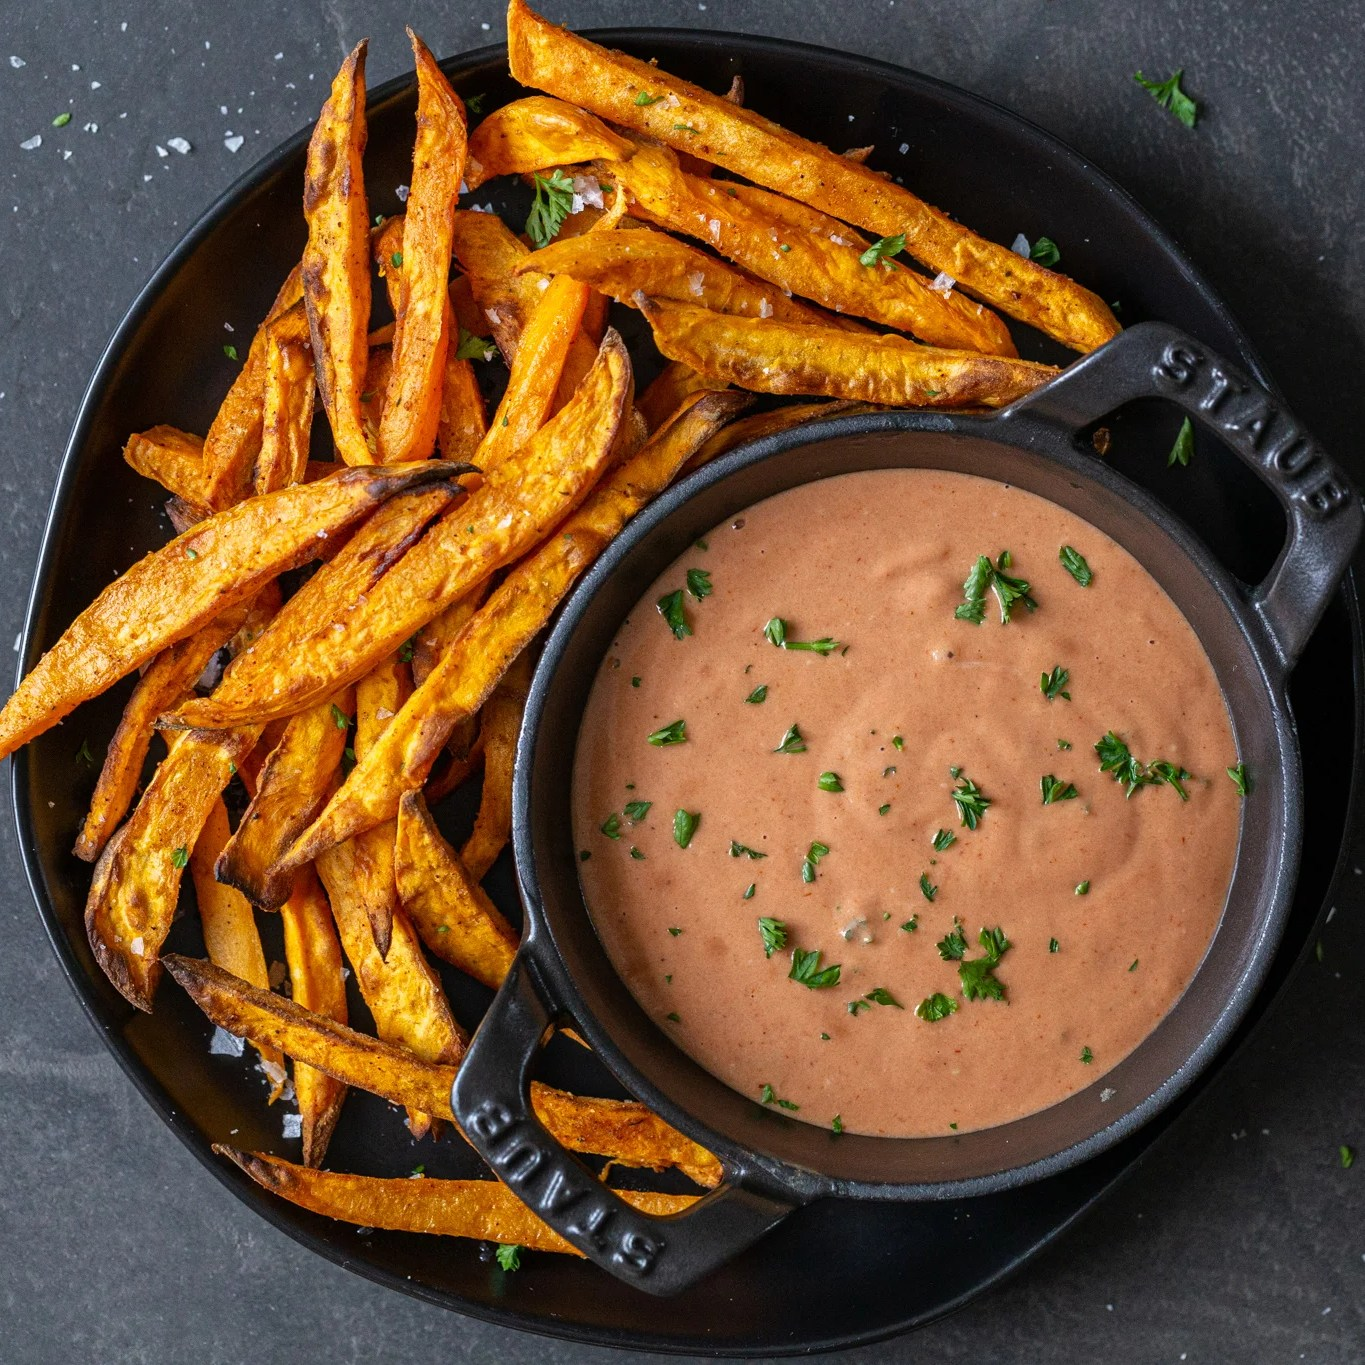 Sweet potato fries on a plate with sauce